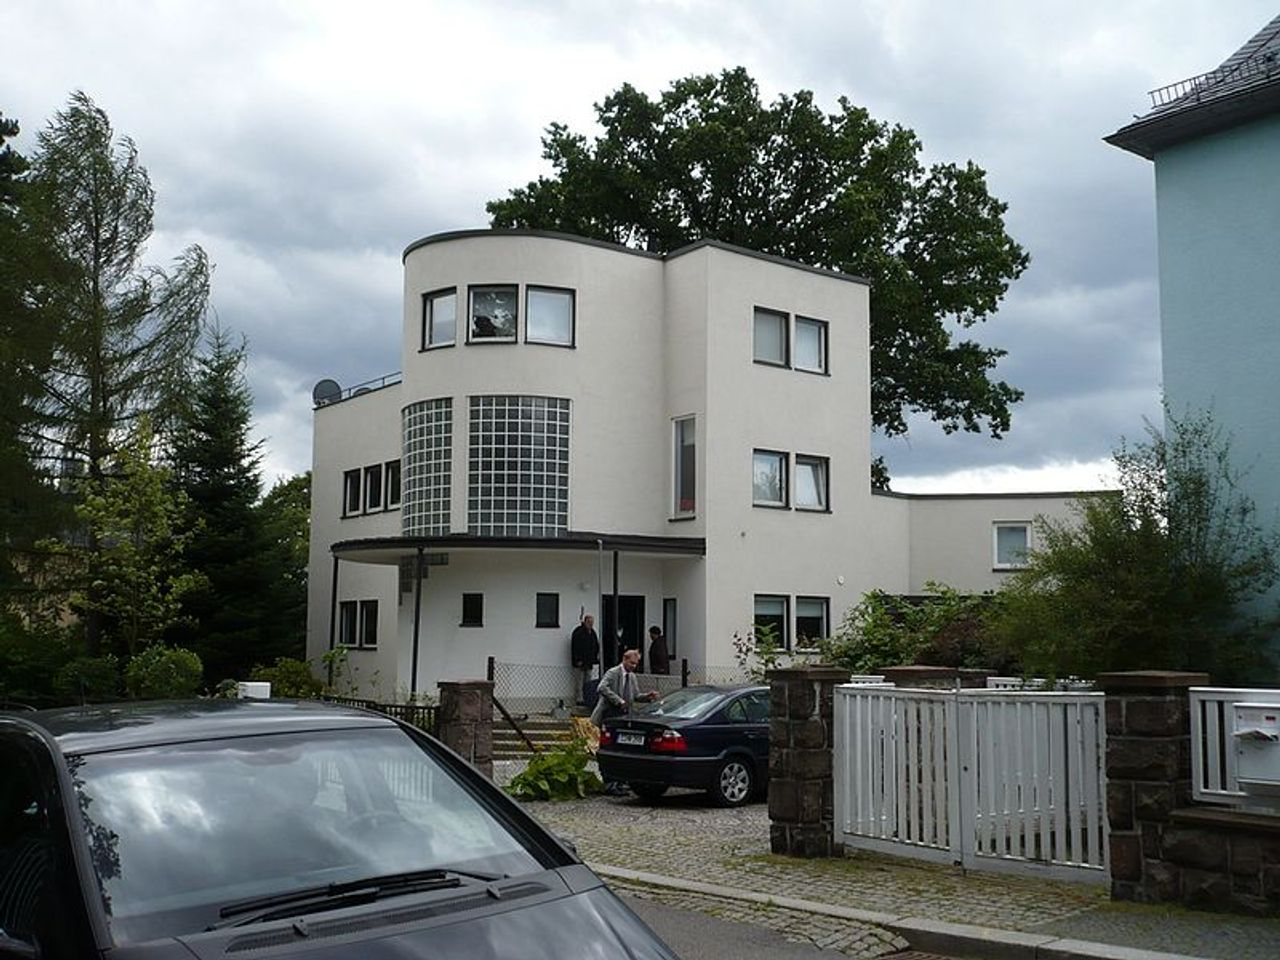 Bauhaus-style building in Chemnitz, Germany